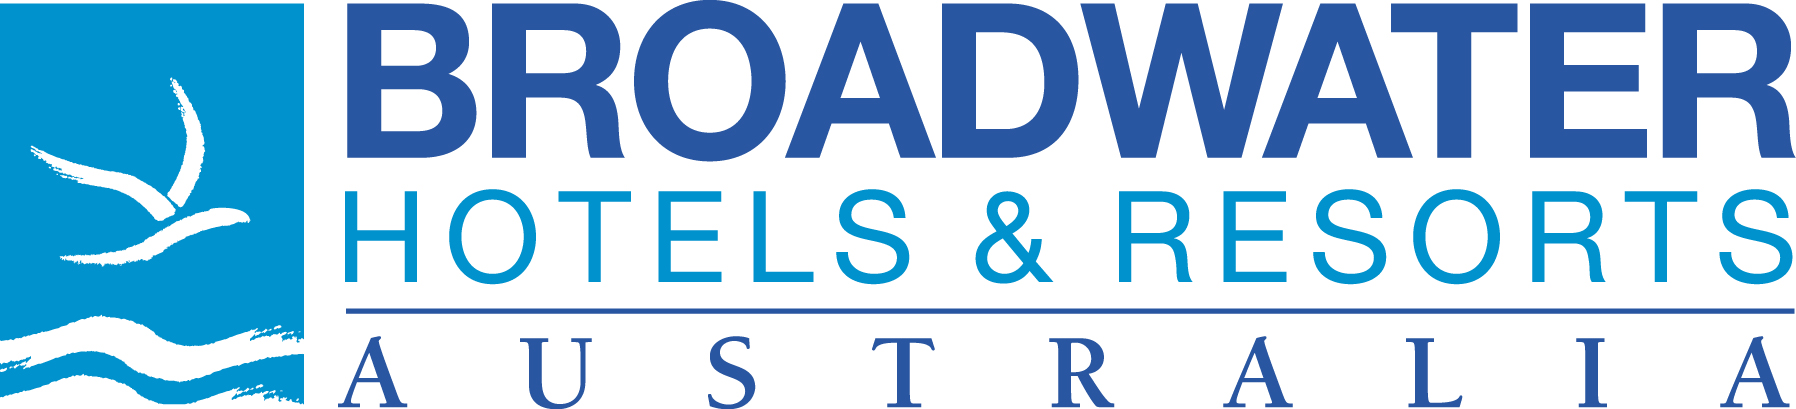 Broadwater Hotels and Resorts